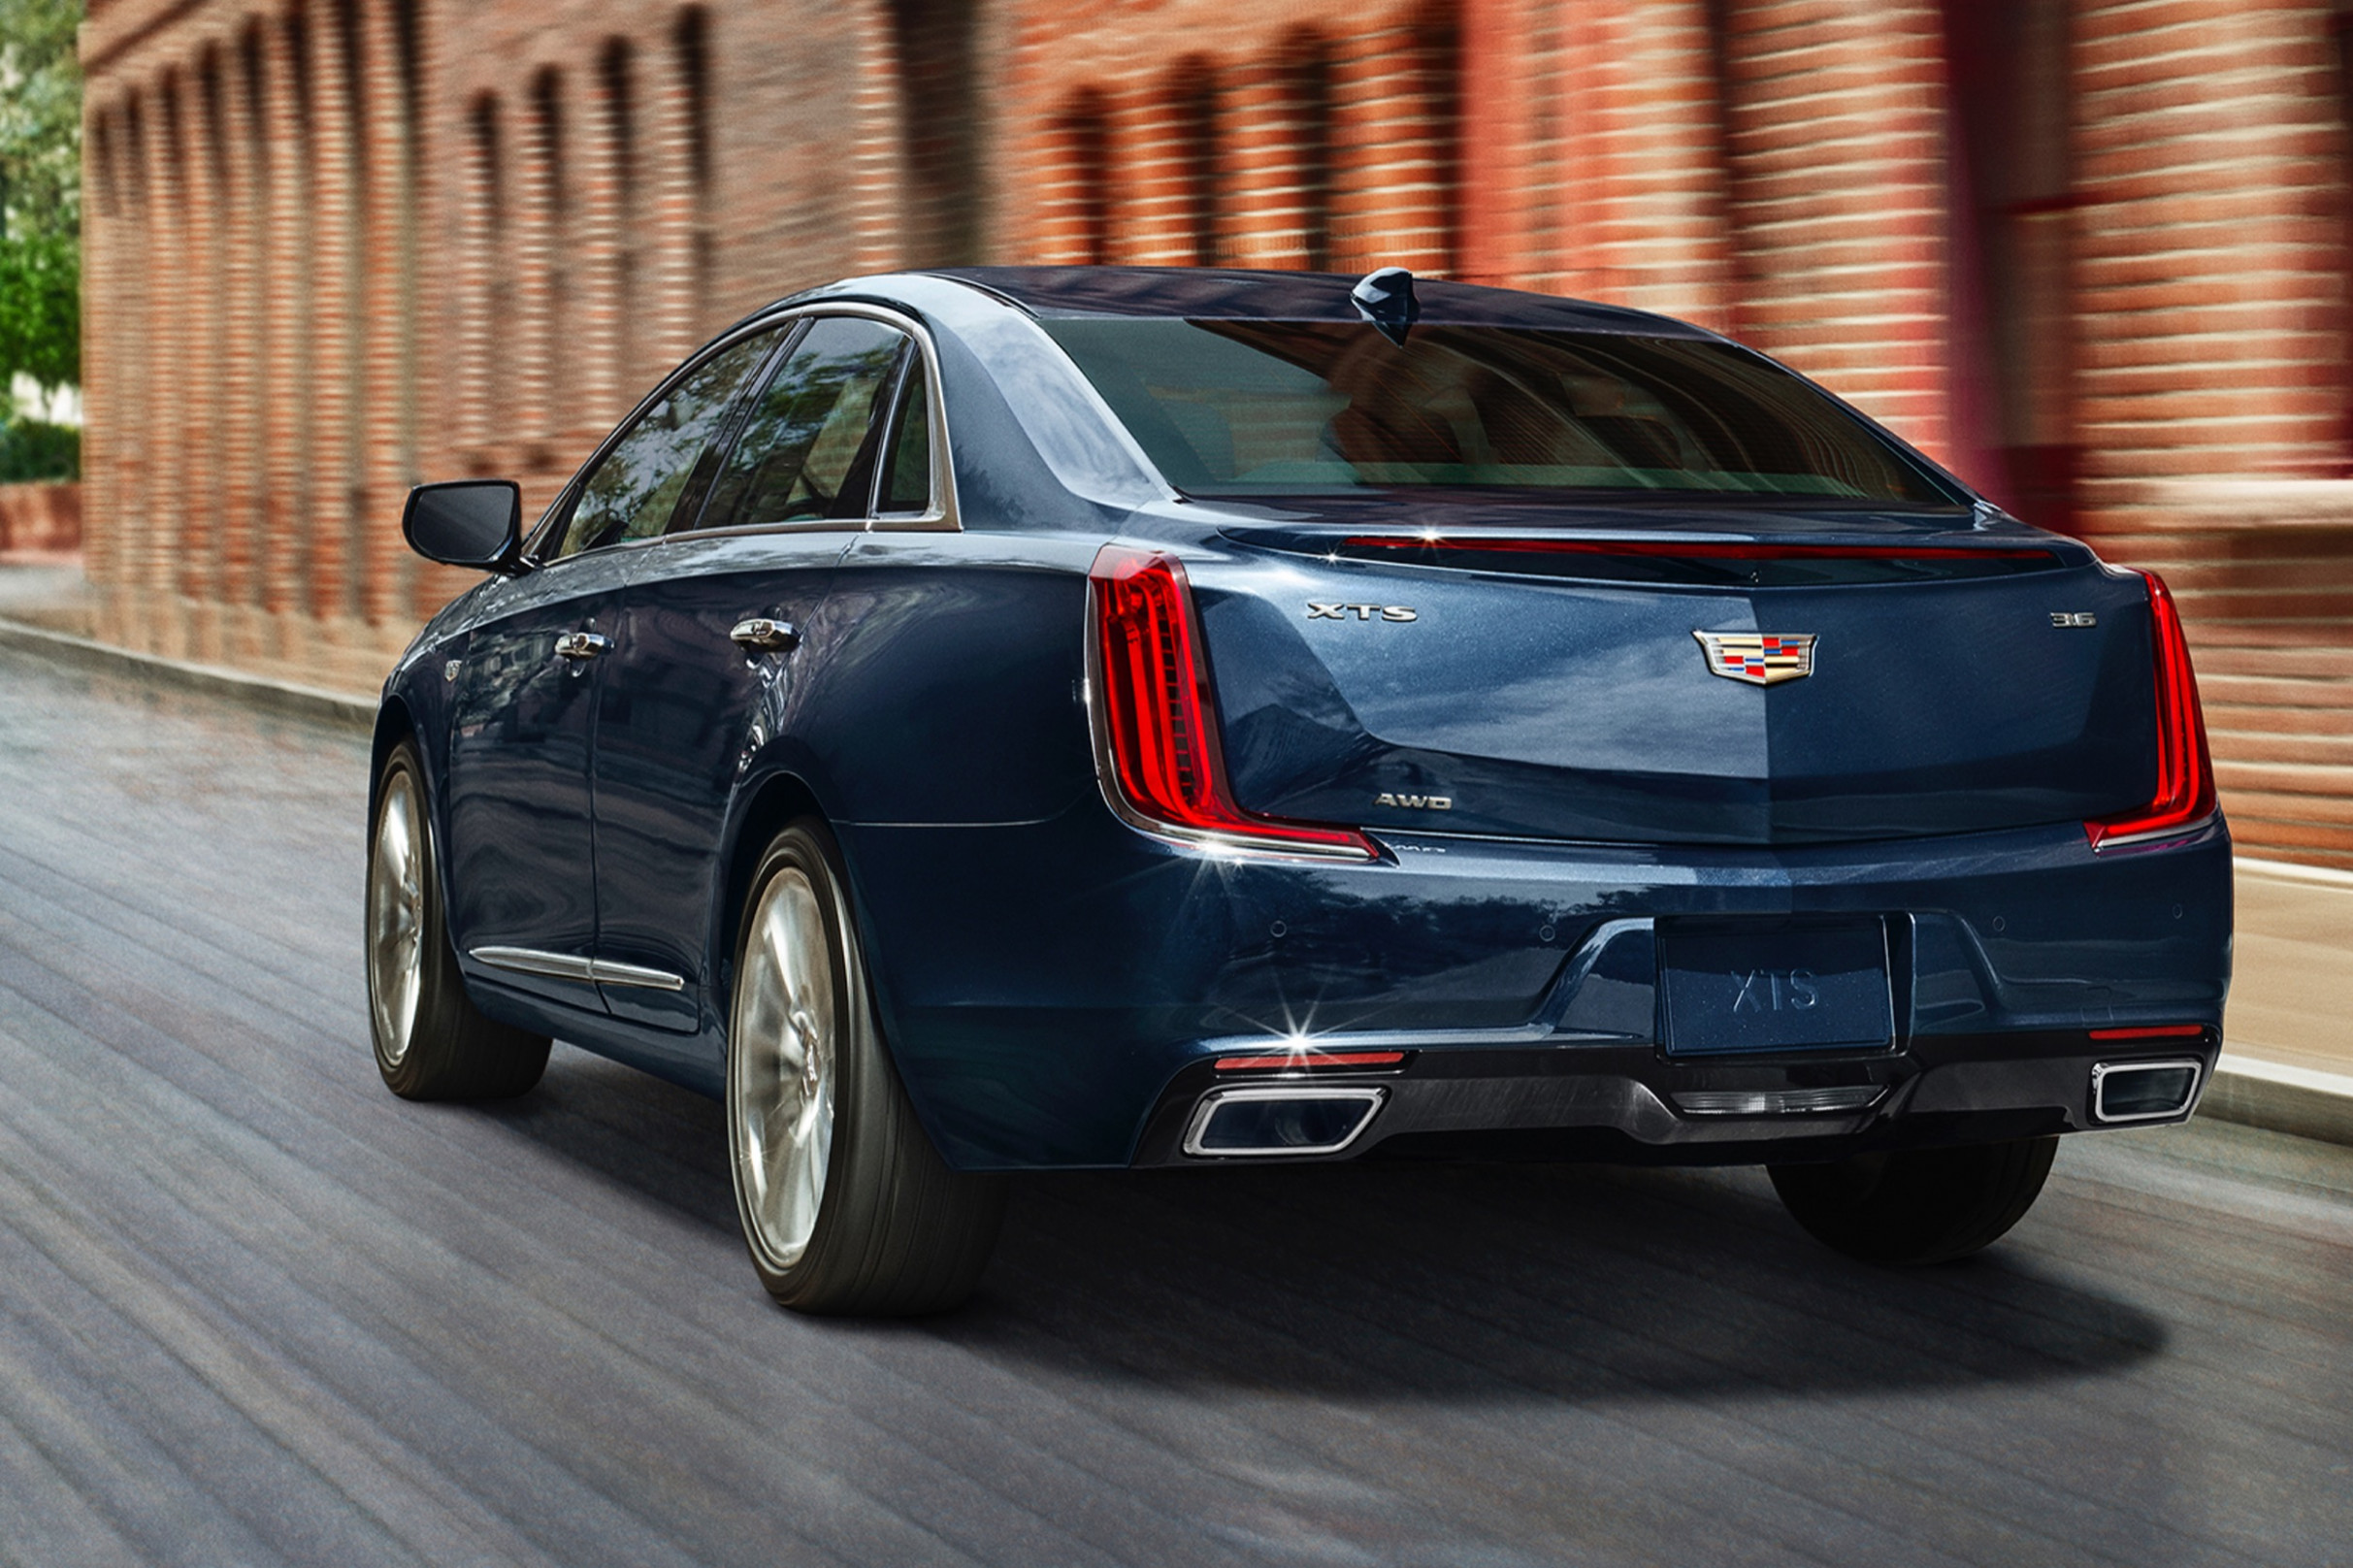 5 Cadillac XTS Info, Pictures, Specs, Wiki | GM Authority | 2020 Cadillac Xts Premium Collection